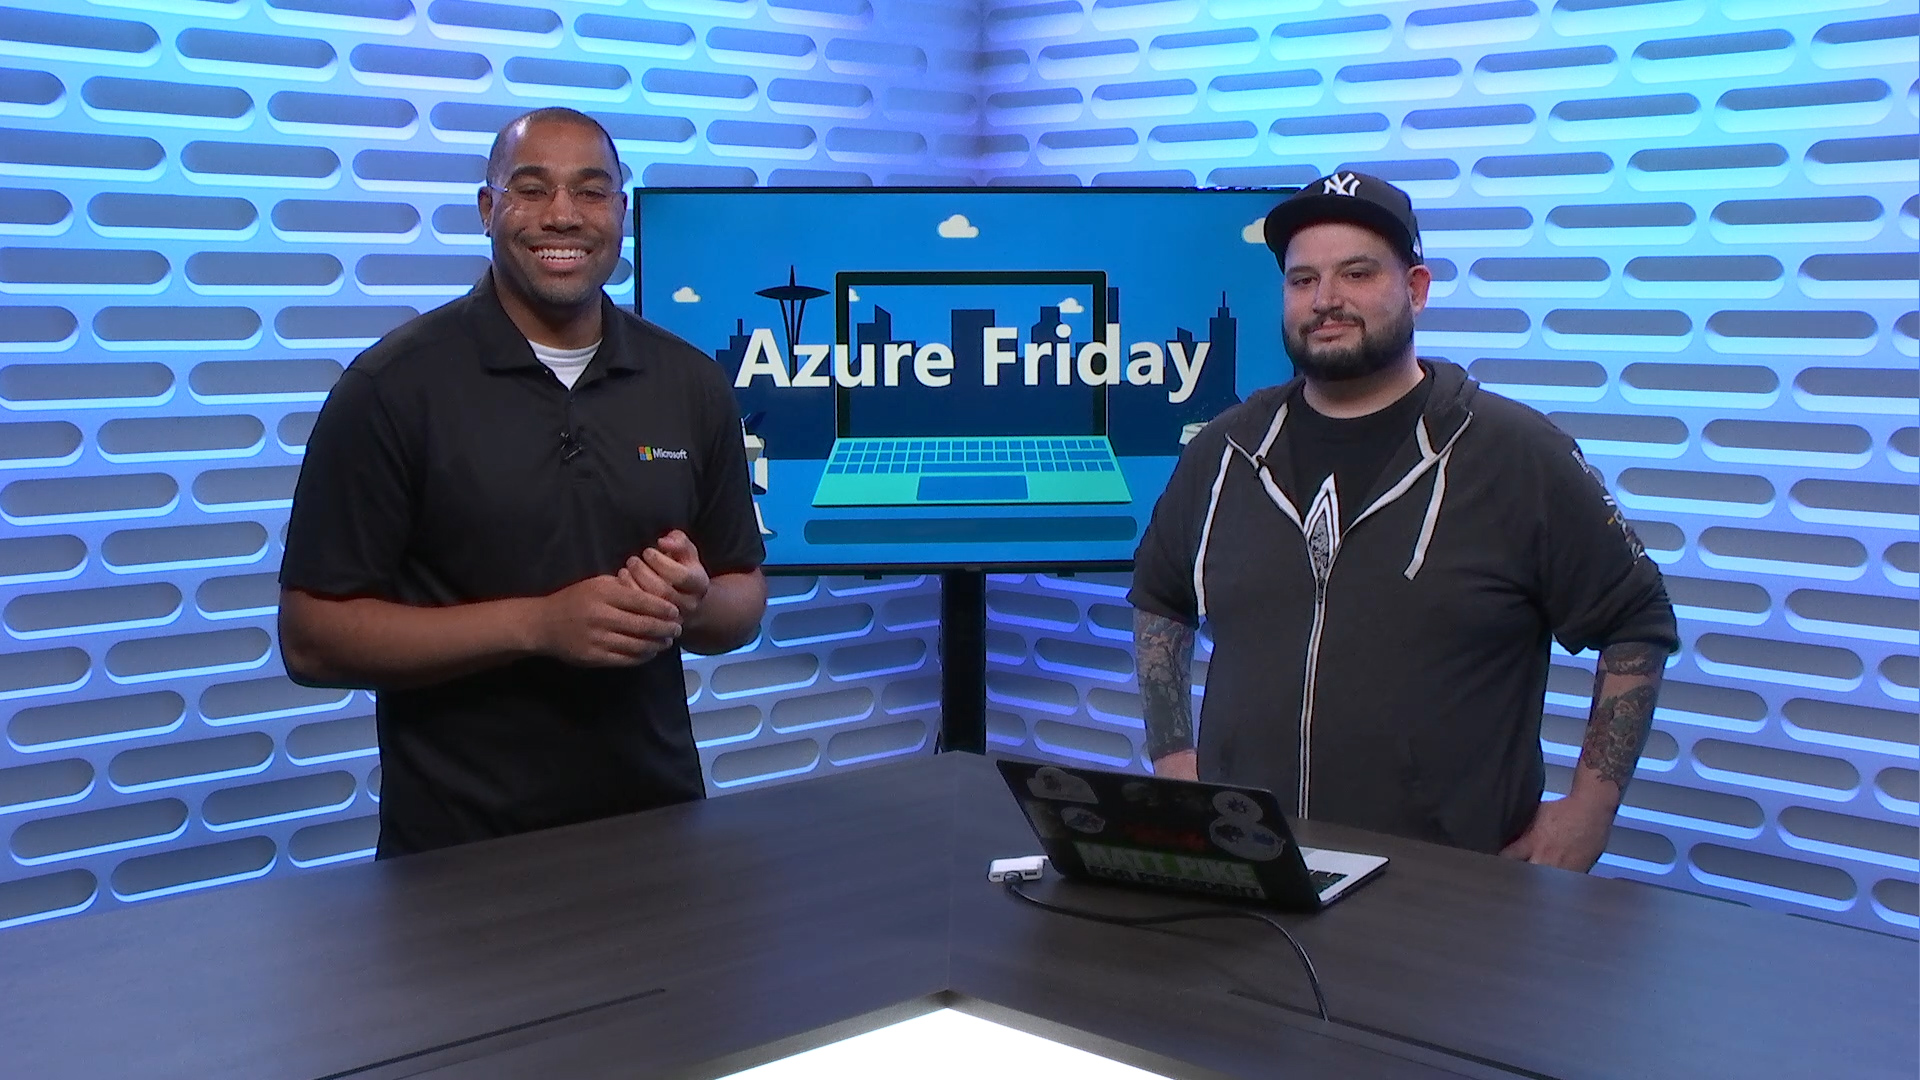 How to build and deploy a containerized app to Azure Kubernetes Service (AKS)